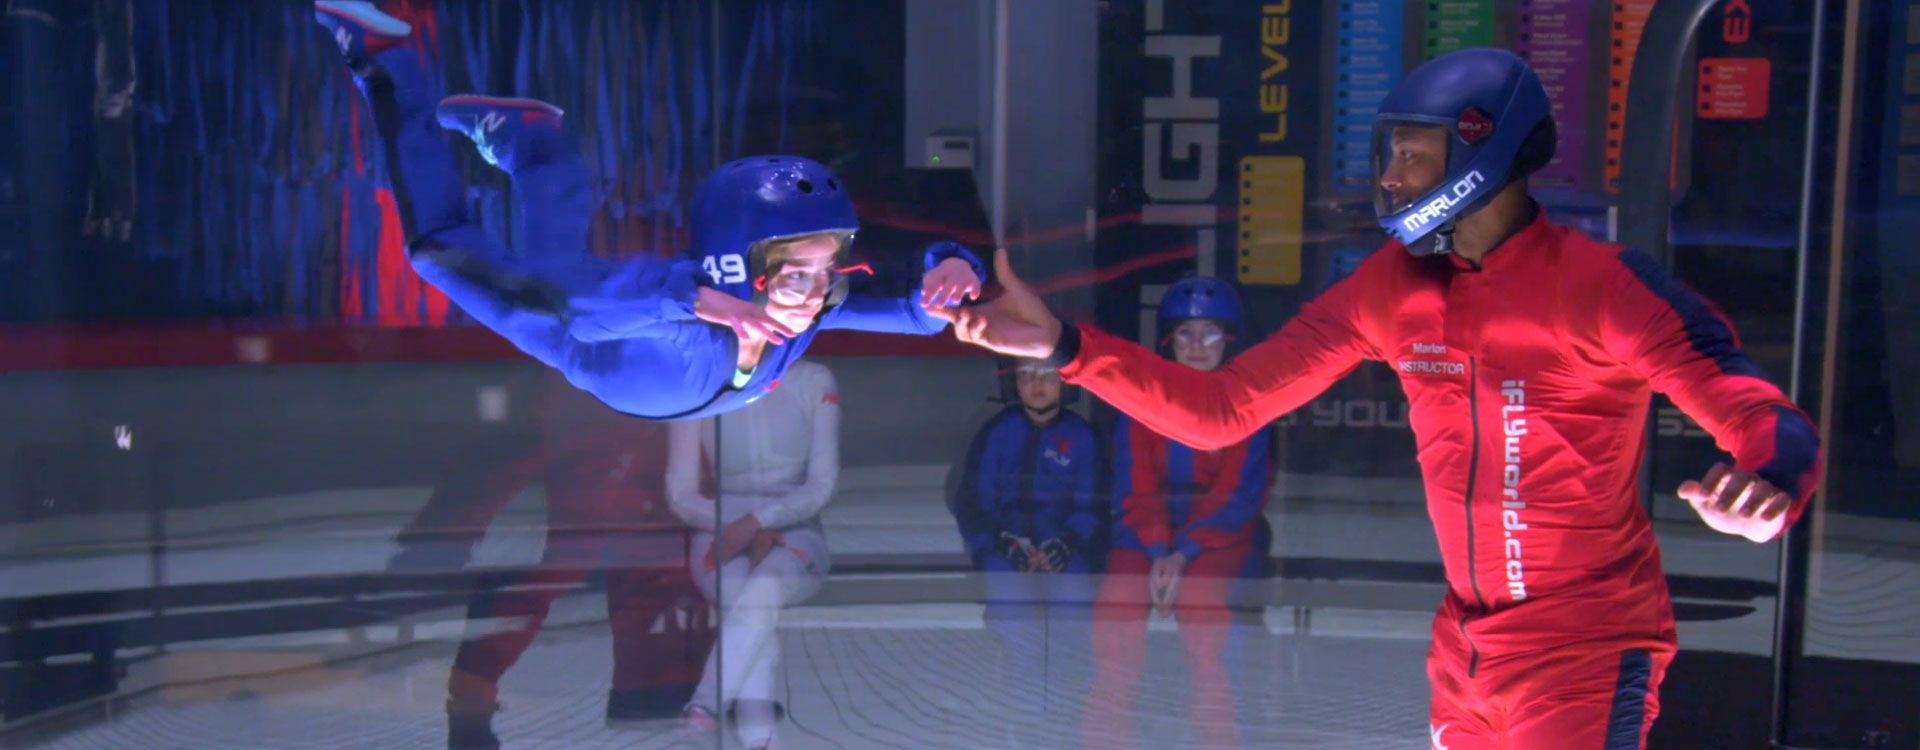 iFLY Baltimore Indoor Skydiving You Can Fly (With images